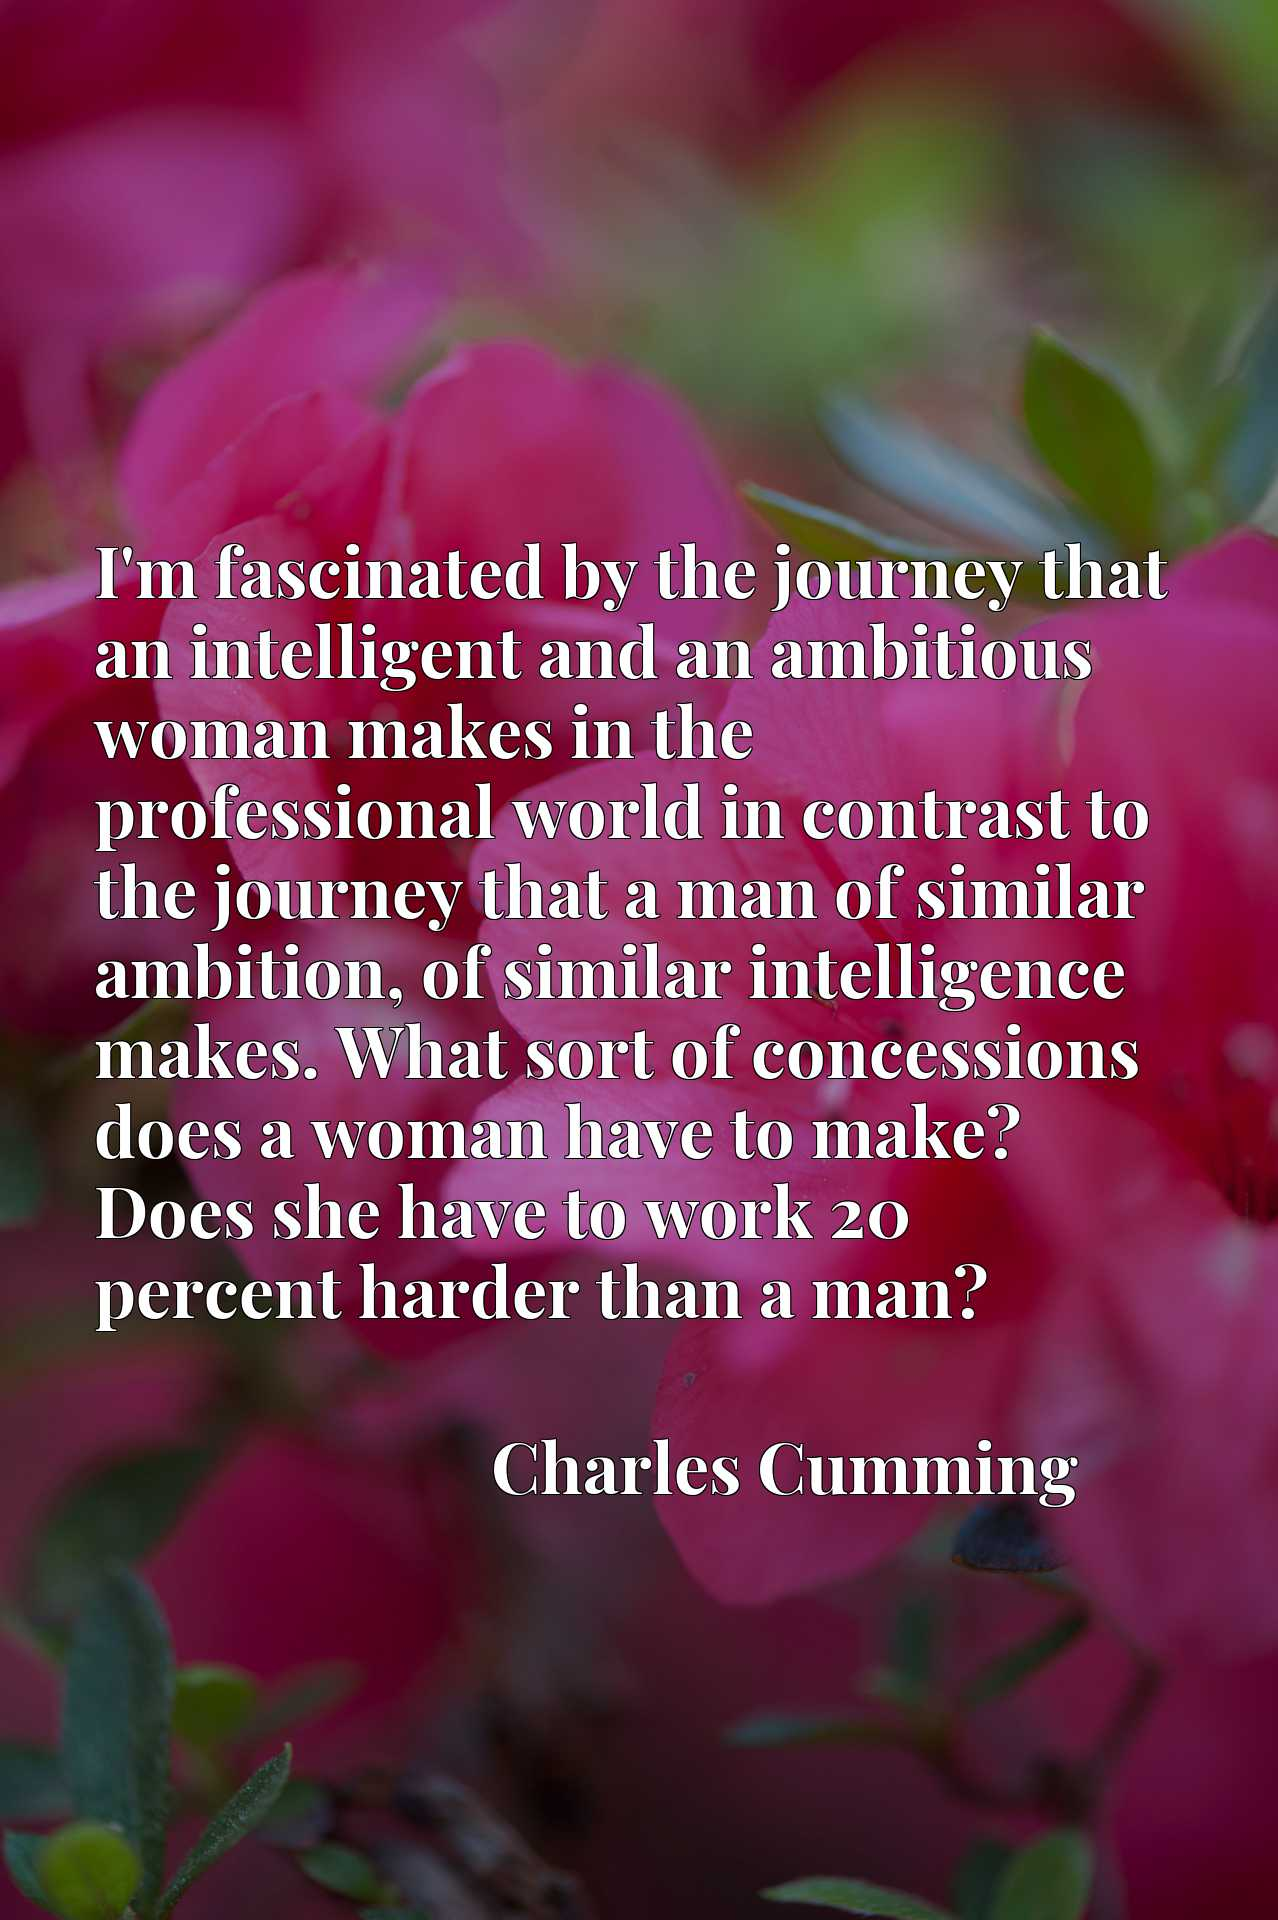 I'm fascinated by the journey that an intelligent and an ambitious woman makes in the professional world in contrast to the journey that a man of similar ambition, of similar intelligence makes. What sort of concessions does a woman have to make? Does she have to work 20 percent harder than a man?